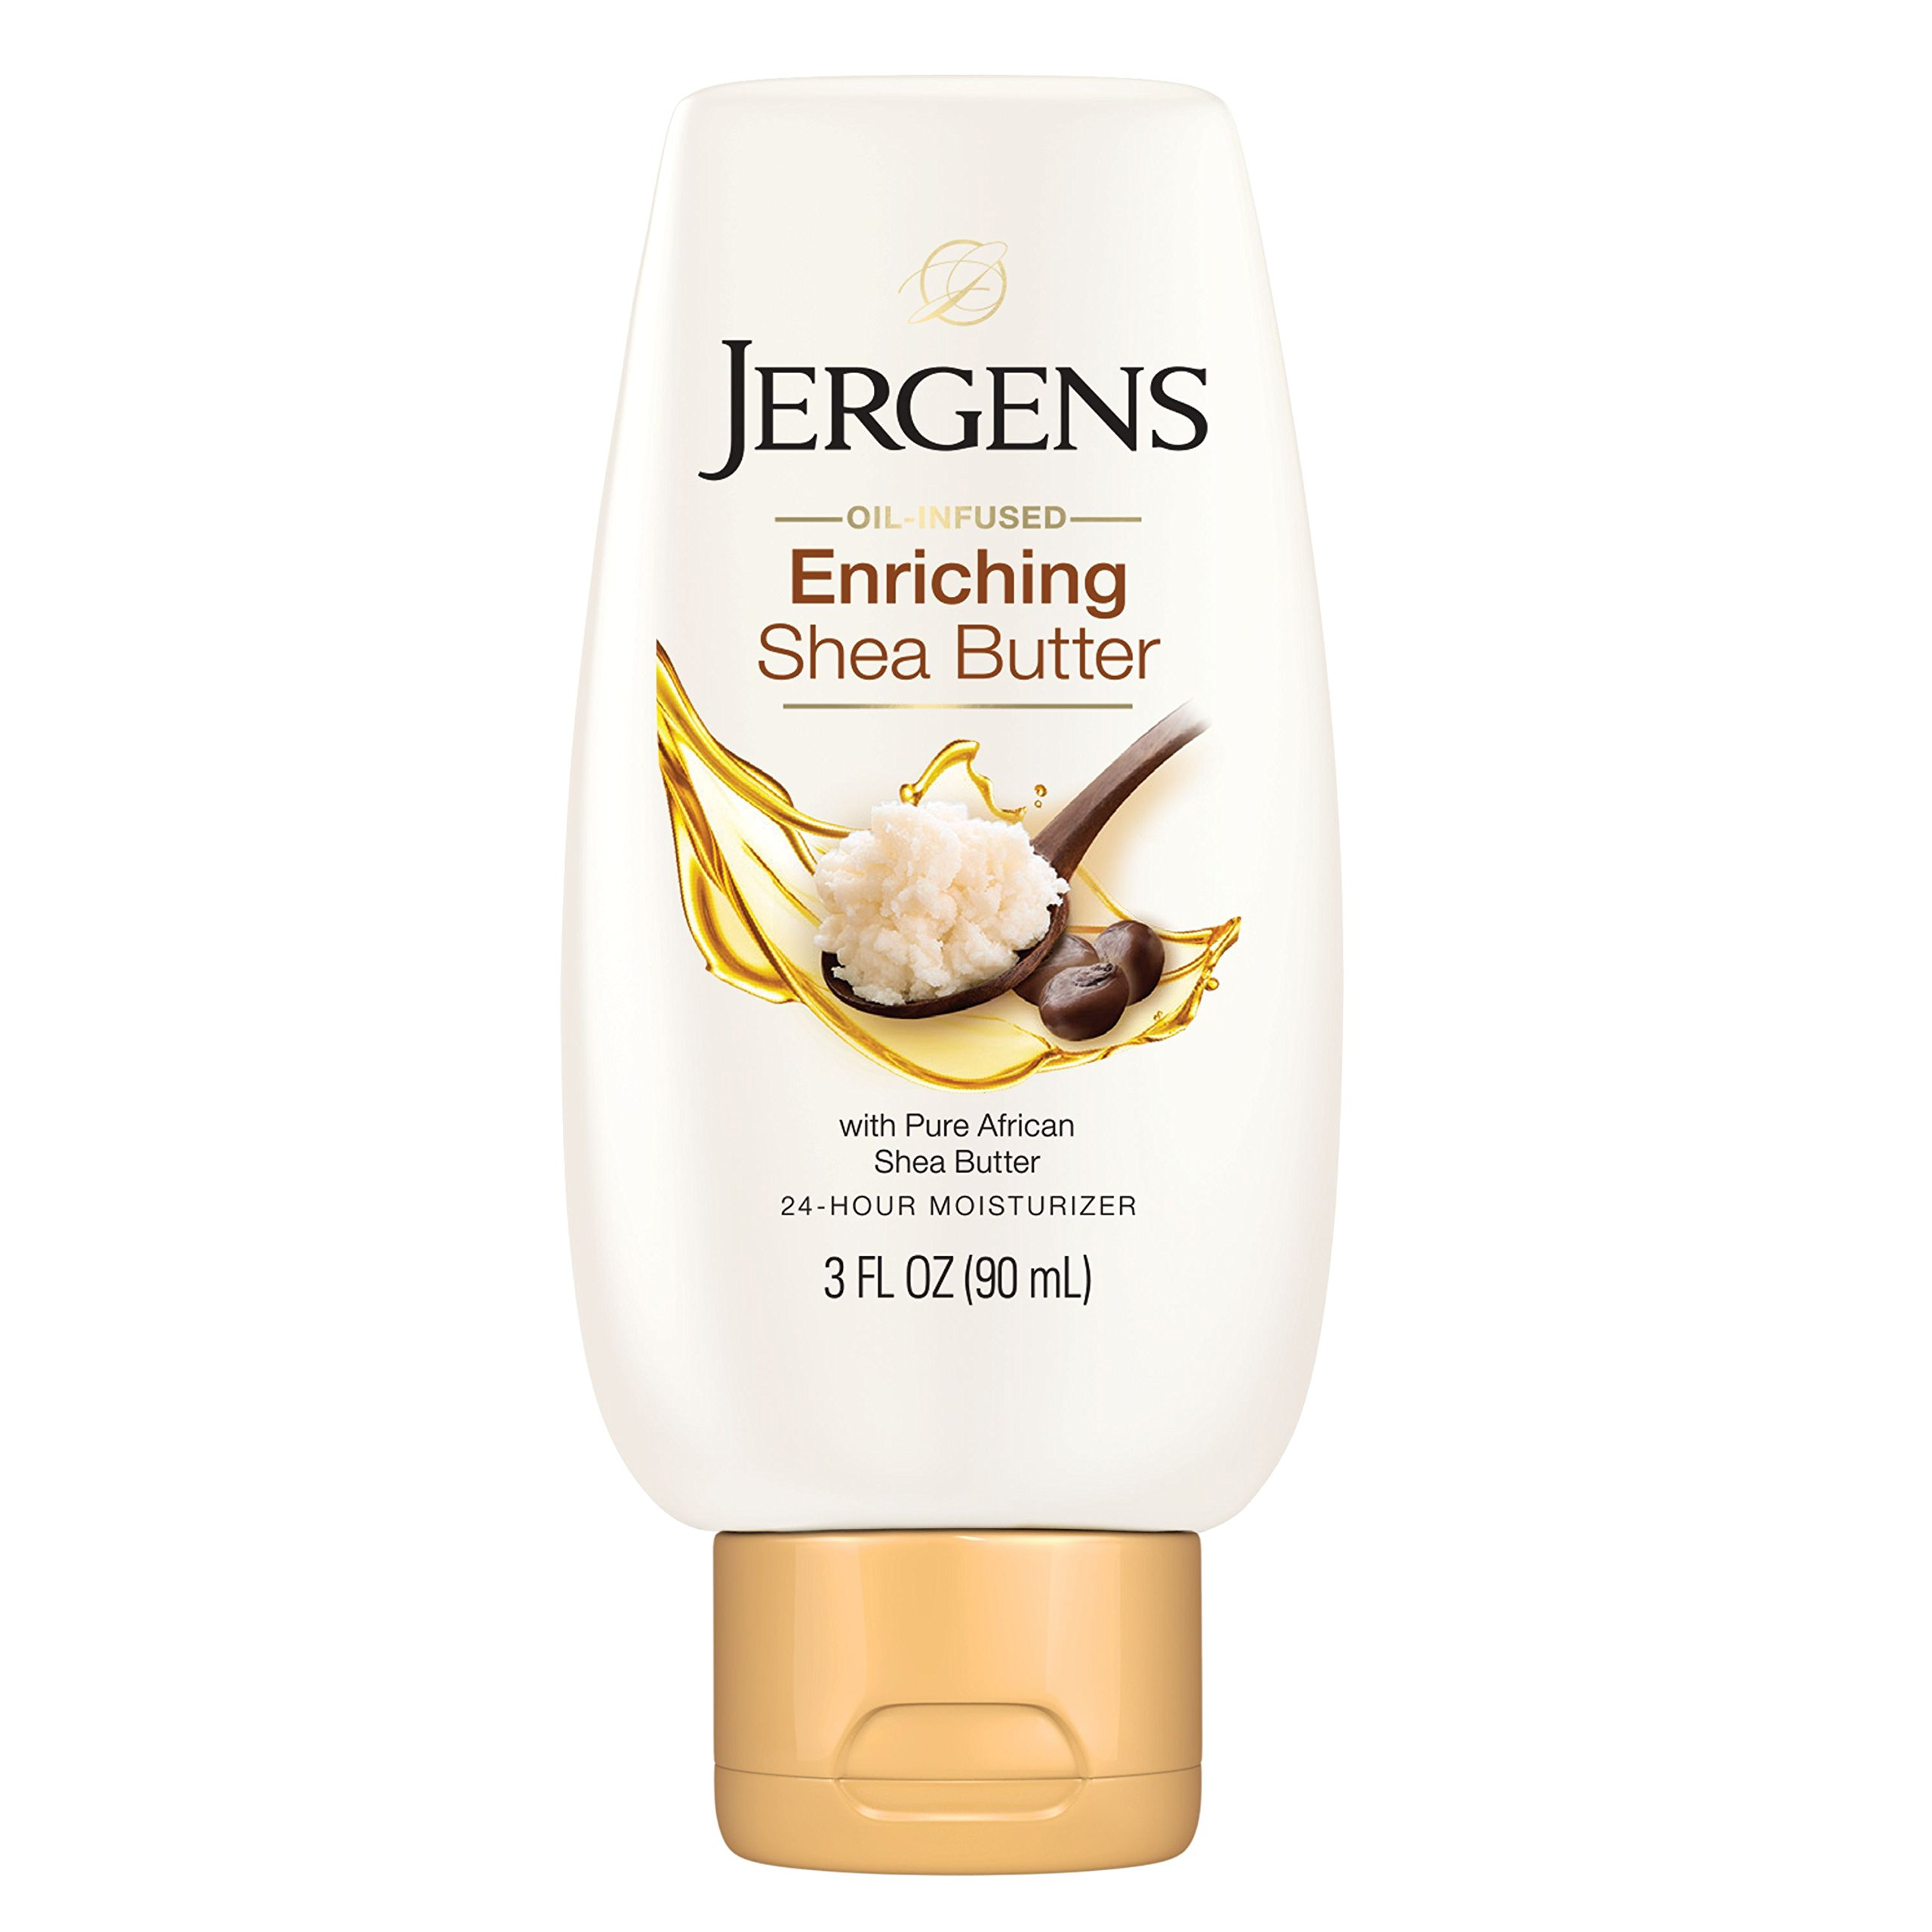 Jergens Shea Butter Deep Conditioning Moisturizer, 3X More Radiant Skin, 3 Ounces, with Pure Shea Butter, Dermatologist Tested (Packaging May Vary)